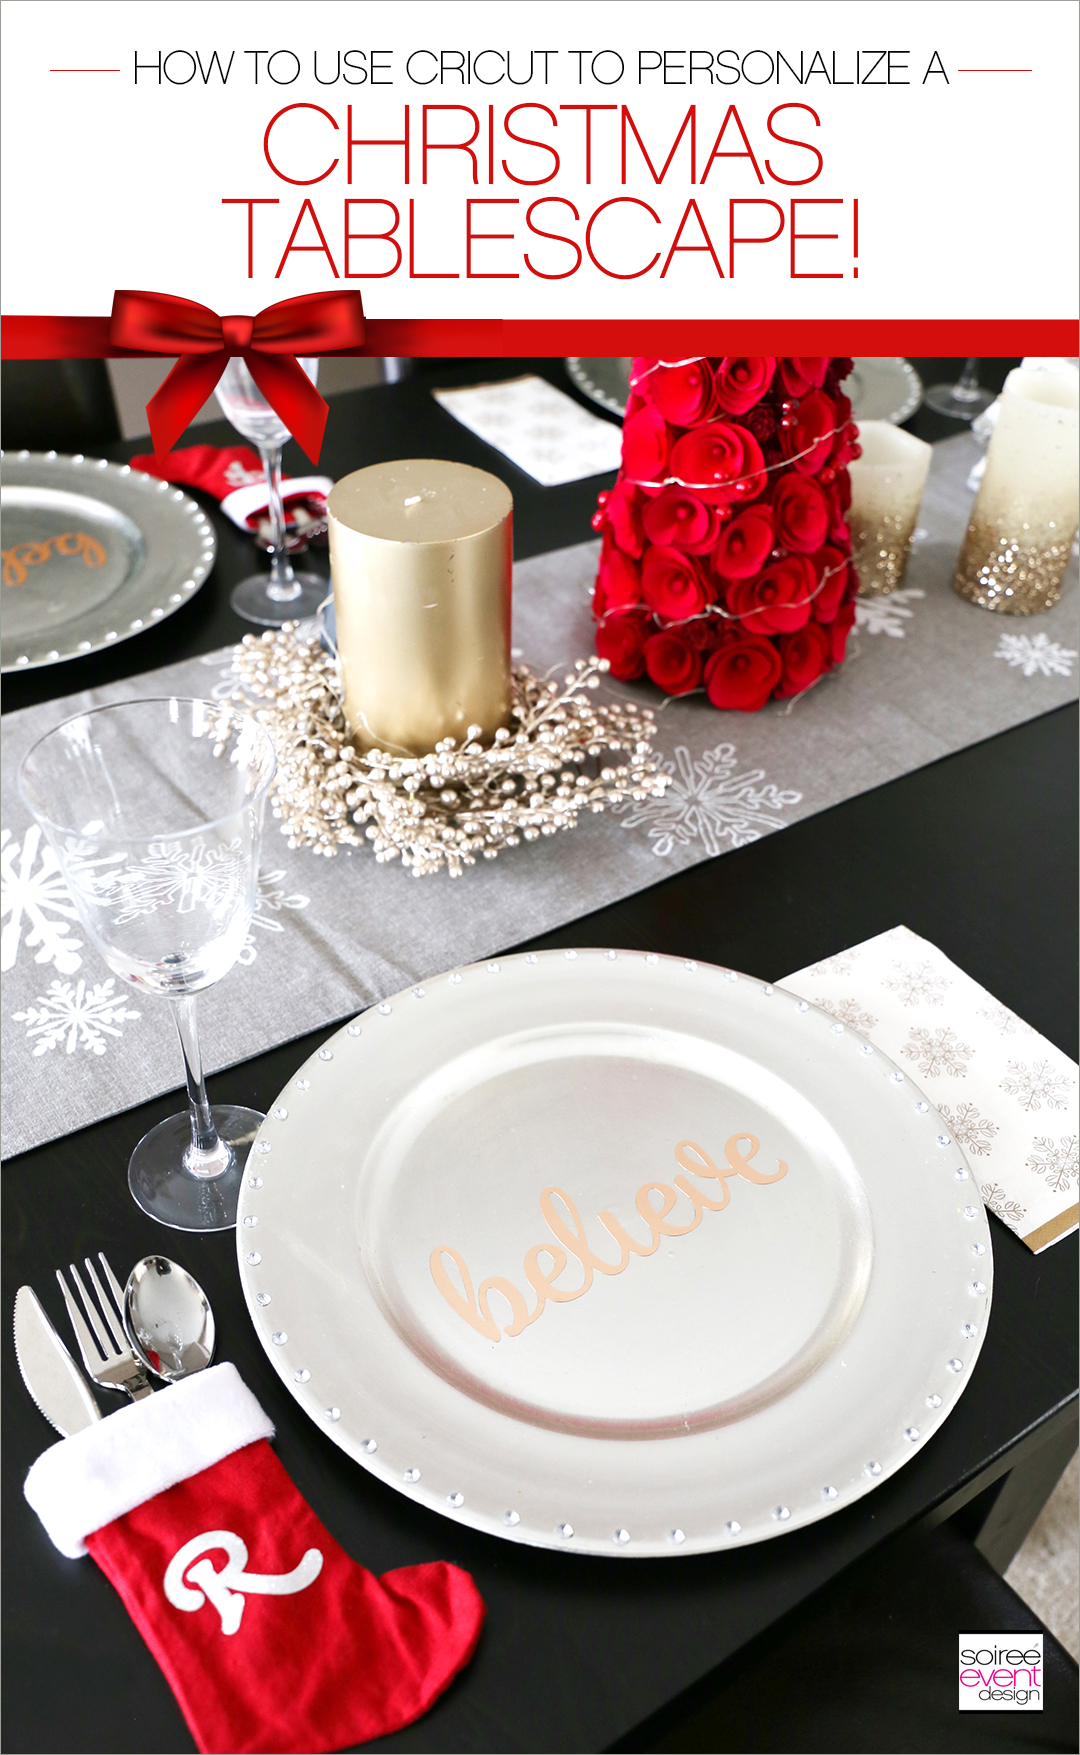 Personalized Christmas Tablescape with CRICUT